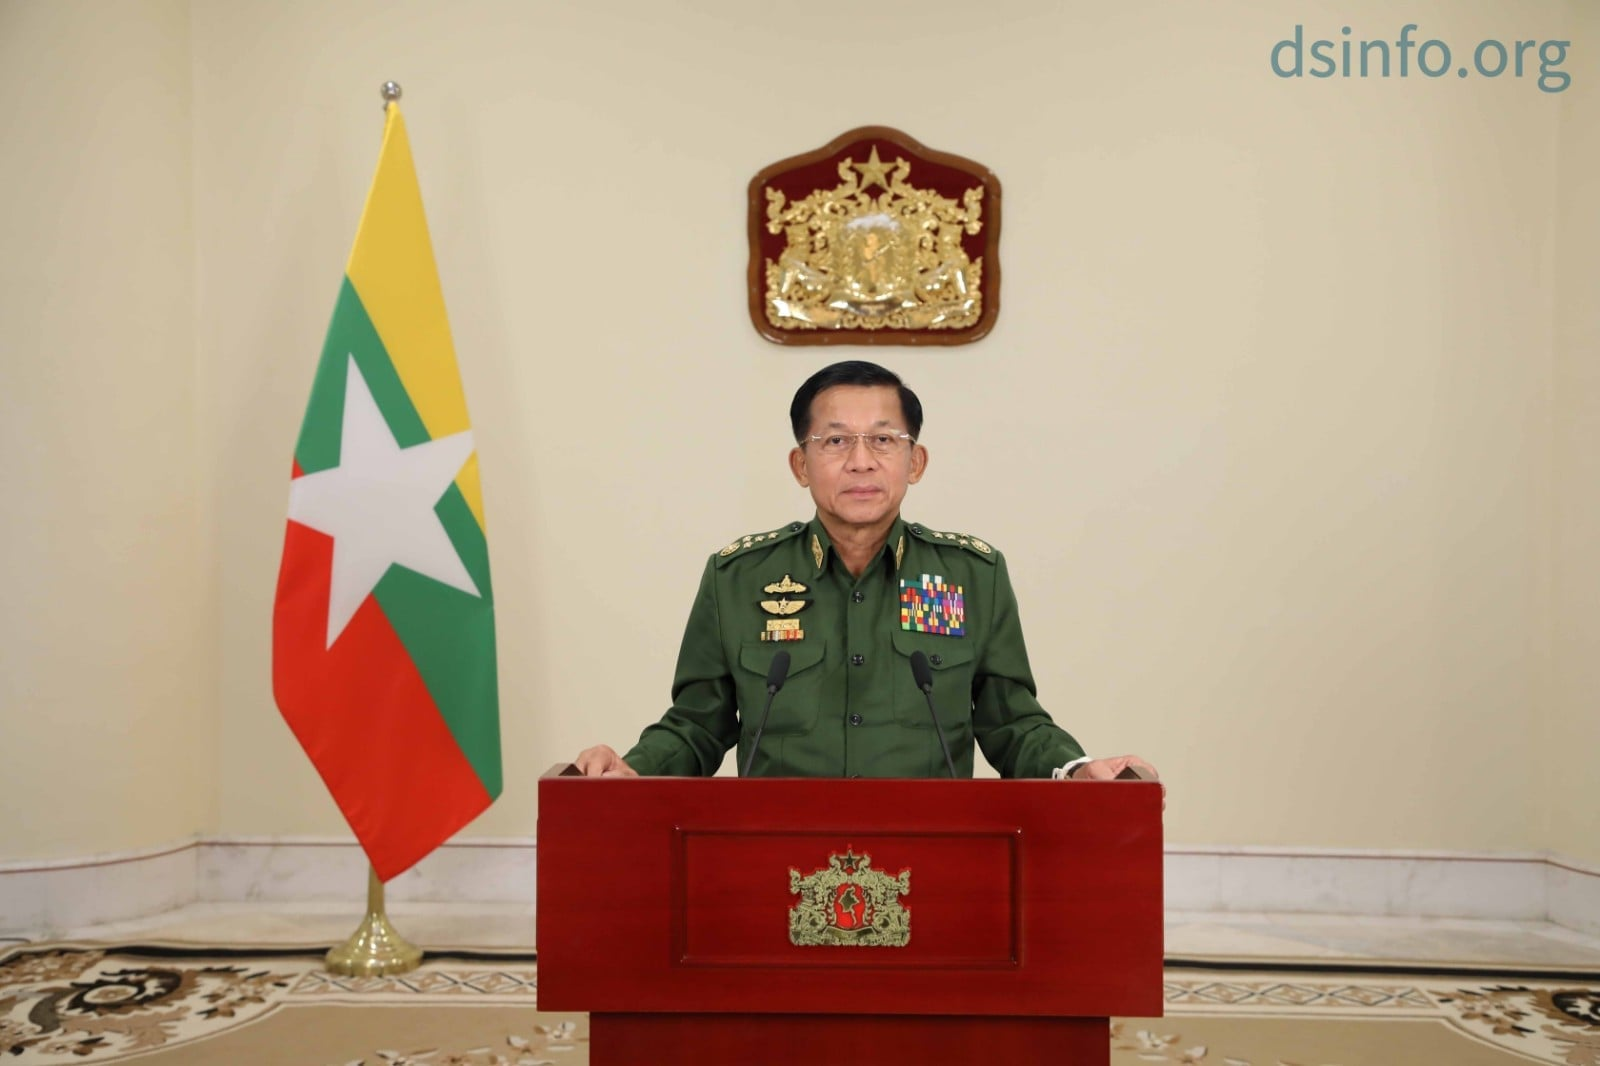 Senior-General Min Aung Hlaing asked the civil servants to return to their workplaces quickly